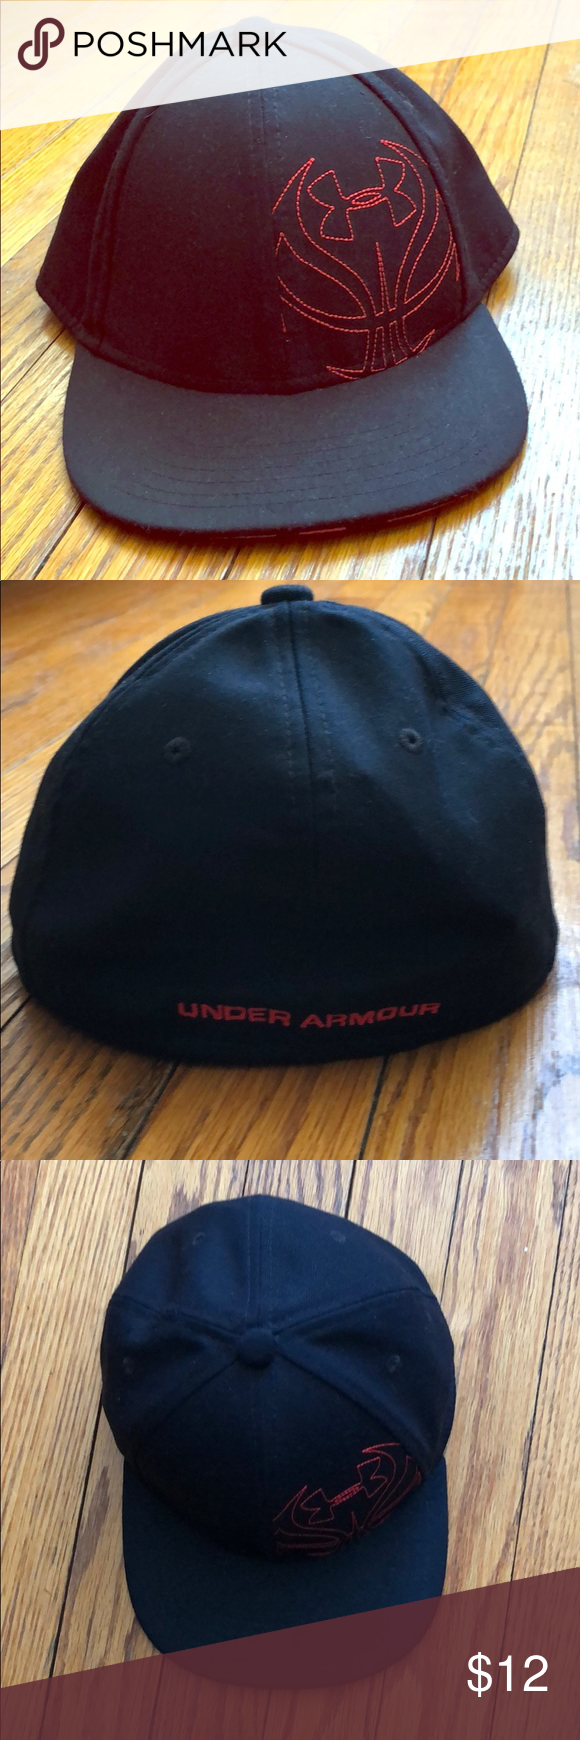 9bc85a9f281 NWOT Youth Under Armour SnapBack Cap Size S M NWOT Under Armour Youth  SnapBack Cap